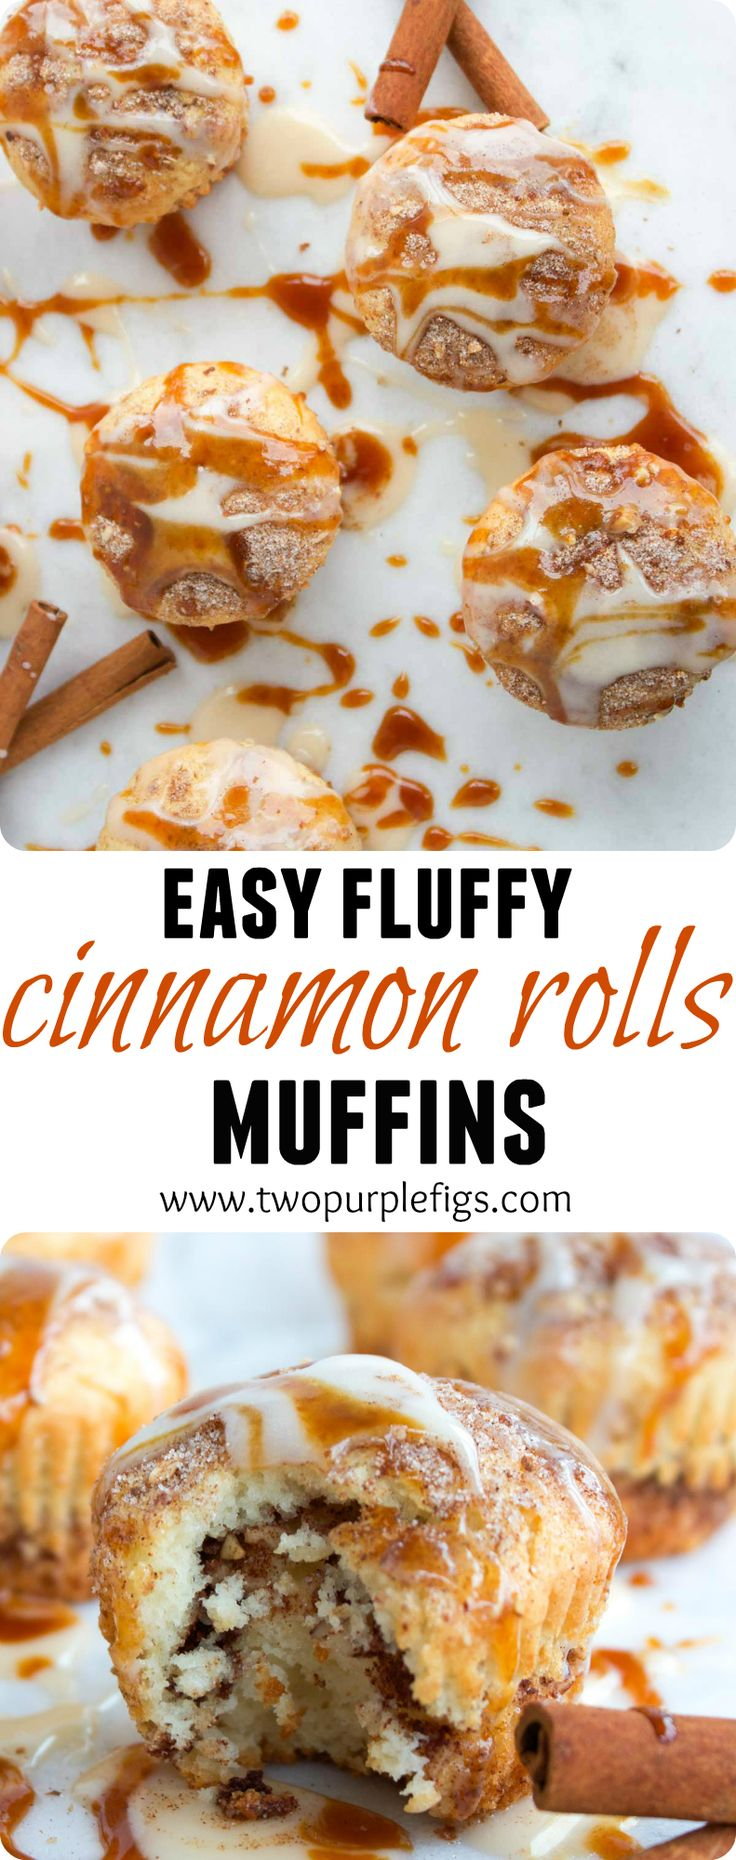 Cinnamon Rolls Muffins. A Tender, fluffy and super easy muffin--ready in 20 mins! The PERFECT way to curb up any cinnamon rolls cravings! An all time favorite recipe that's always a HIT! www.twopurplefigs.com